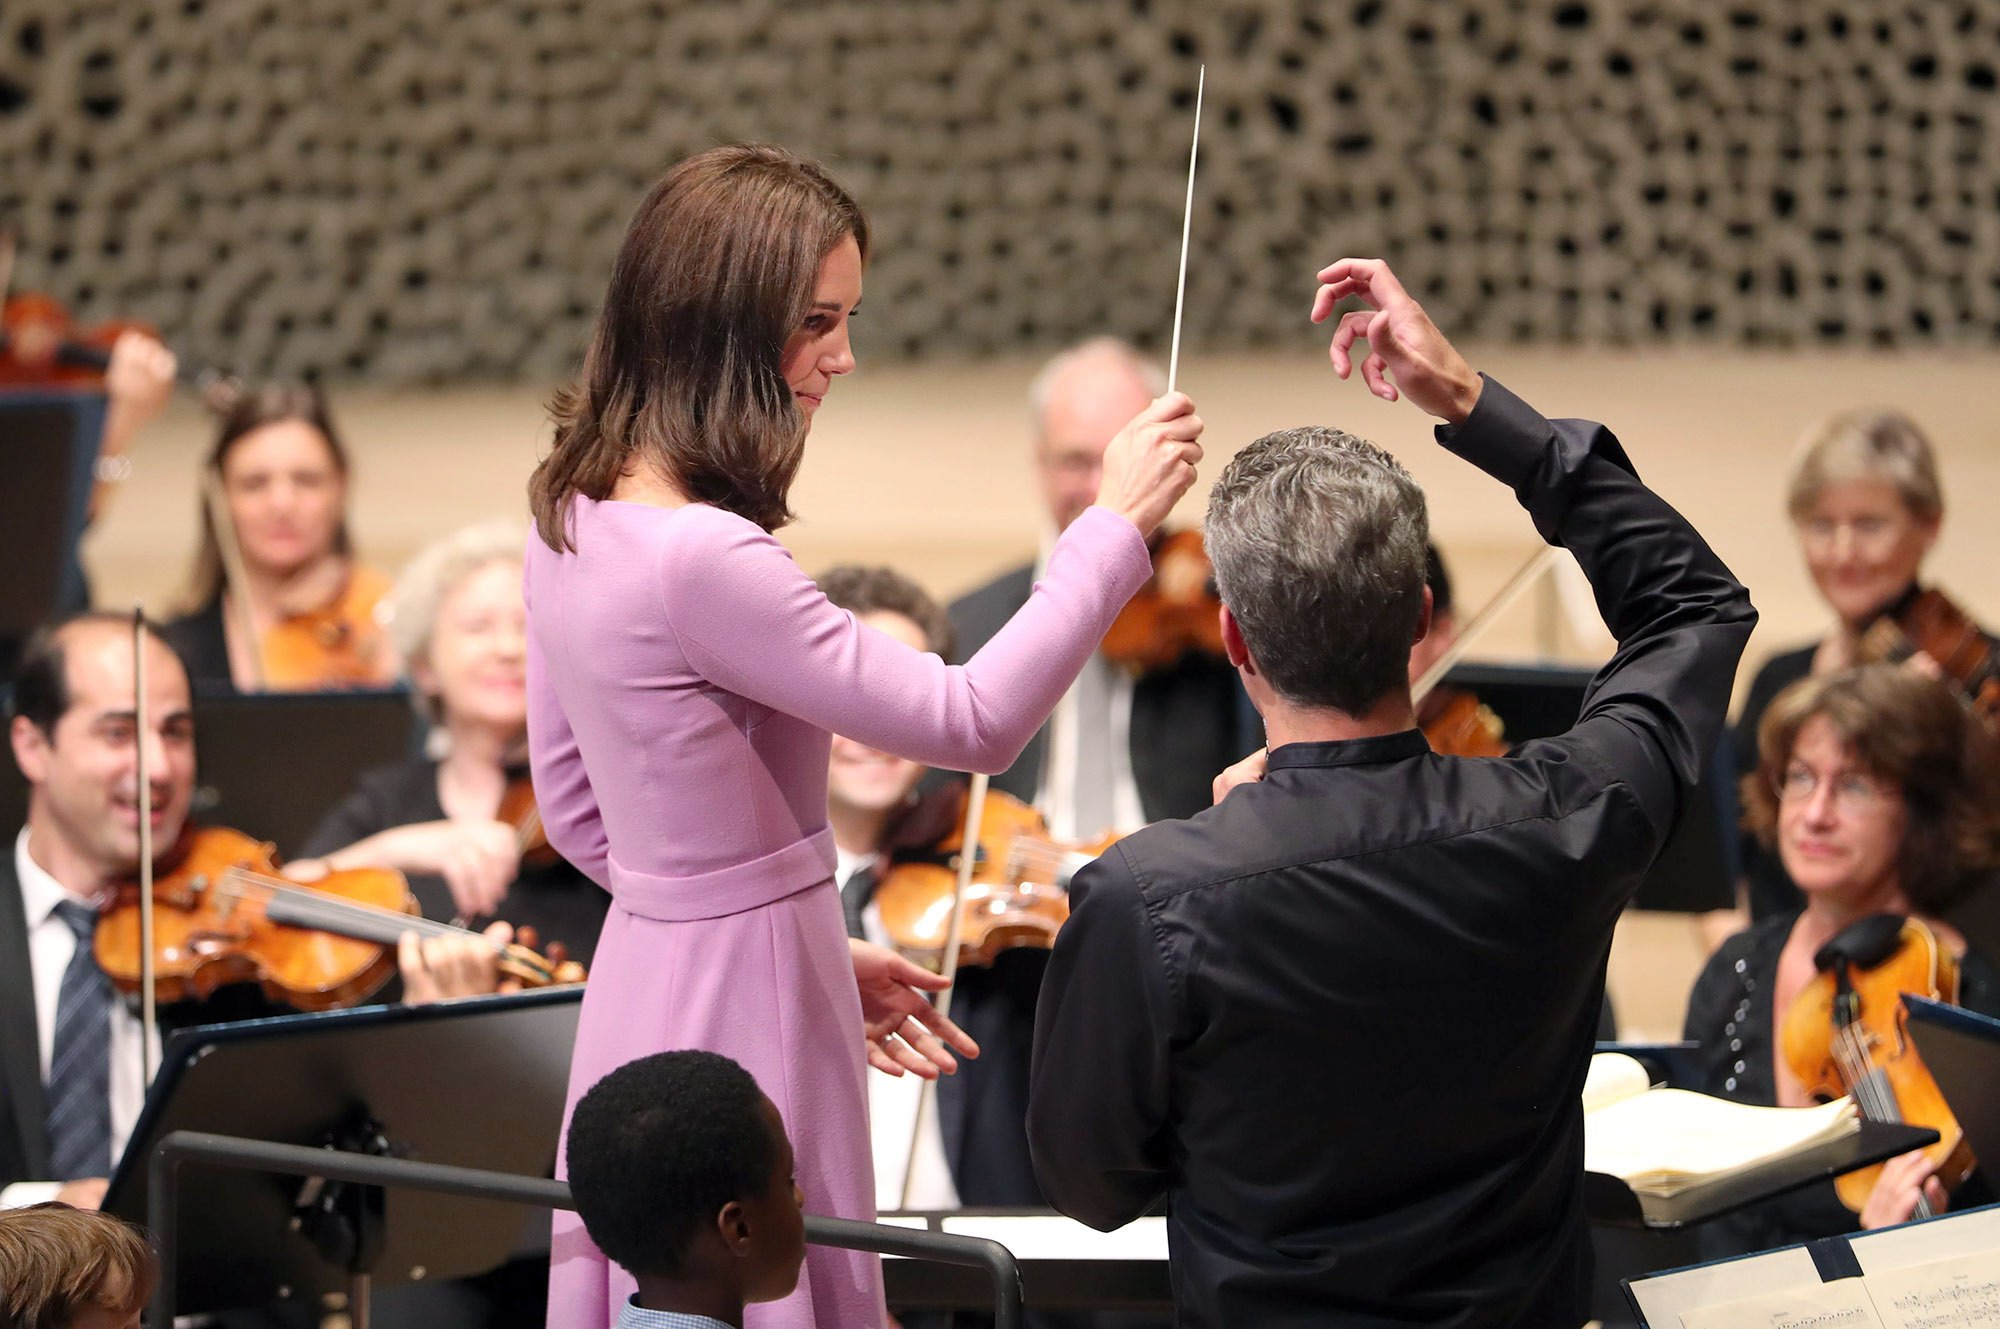 HAMBURG, GERMANY - JULY 21: Catherine, Duchess of Cambridge receives lessons to conduct an orchestra at Elbphilharmonie during day three of their official visit to Germany after two days in Poland on July 21, 2017 in Hamburg, Germany. (Photo by Jane Barlow - Pool/Getty Images)